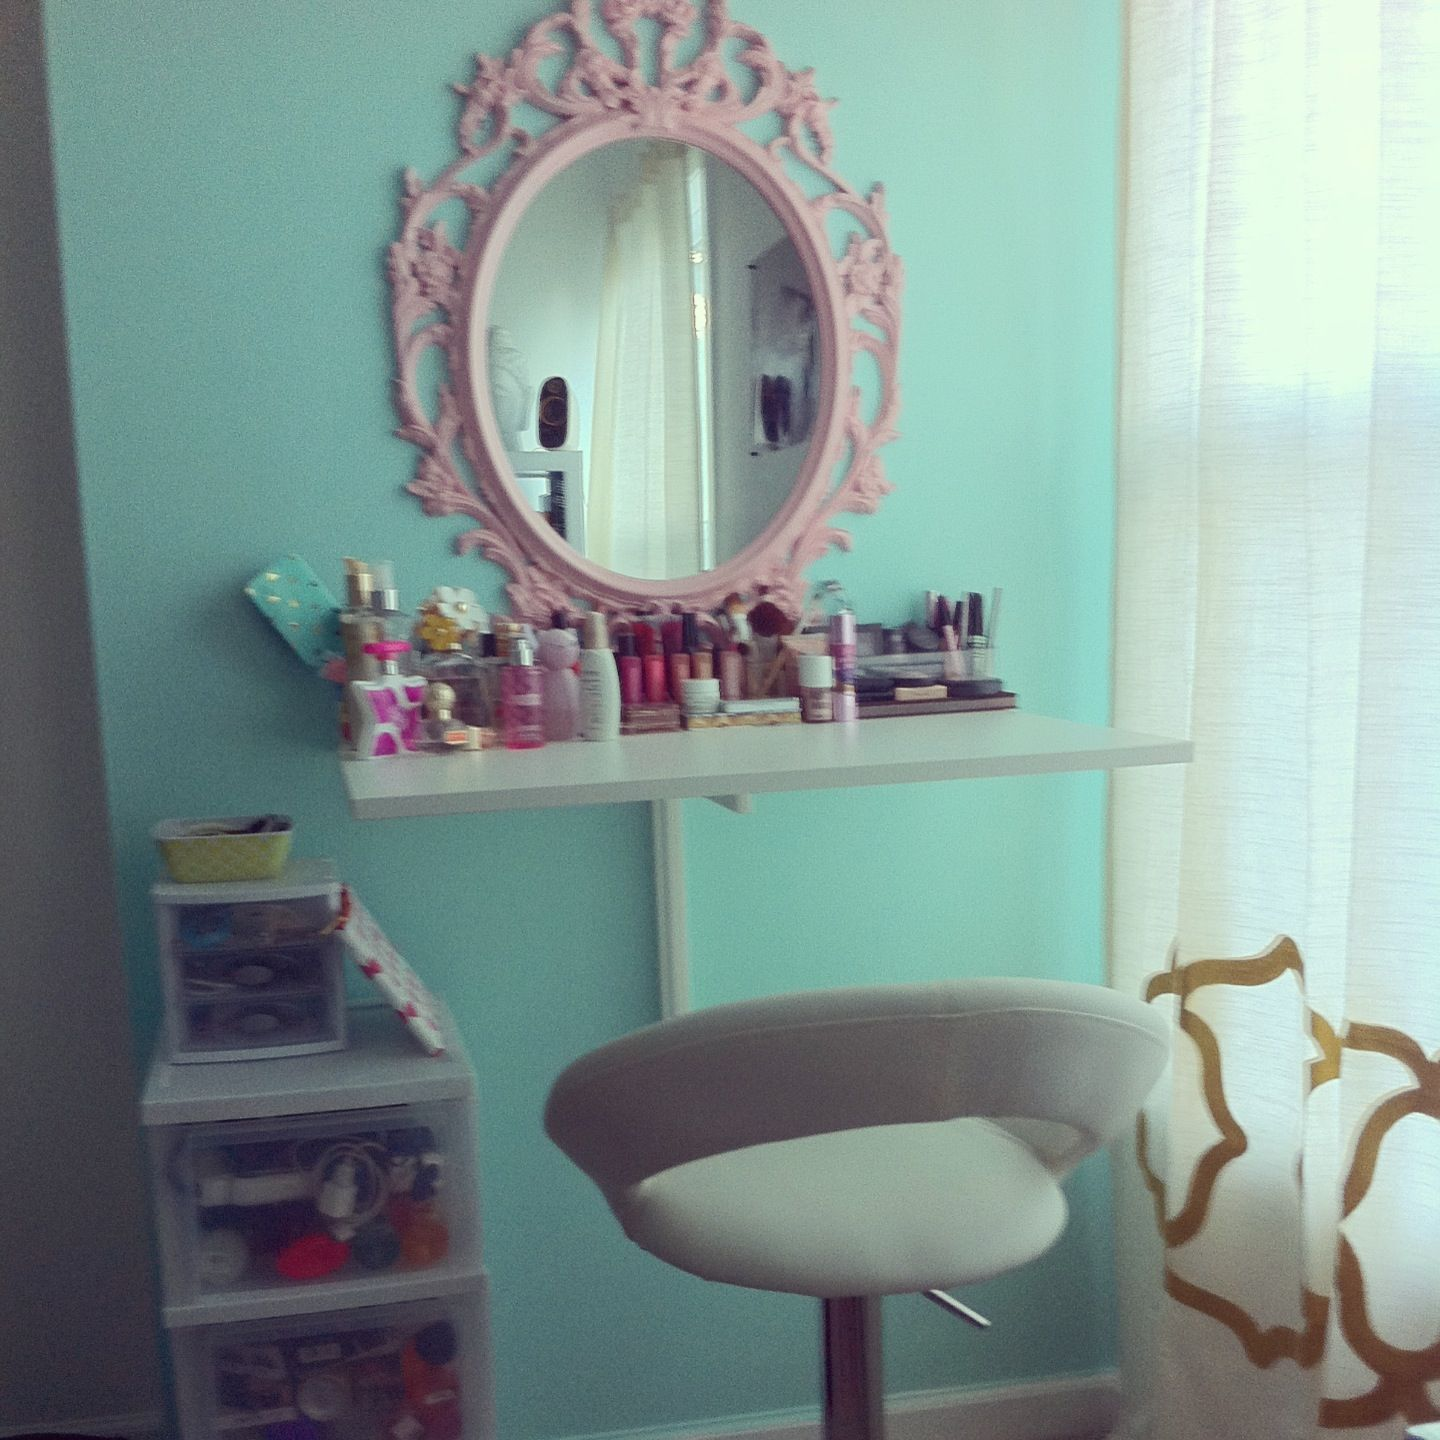 Vanity Light Wall Mirror : - i can put 2 drawers underneath the waall desk for storage! DIY vanity. Ikea wall desk. Ikea ...